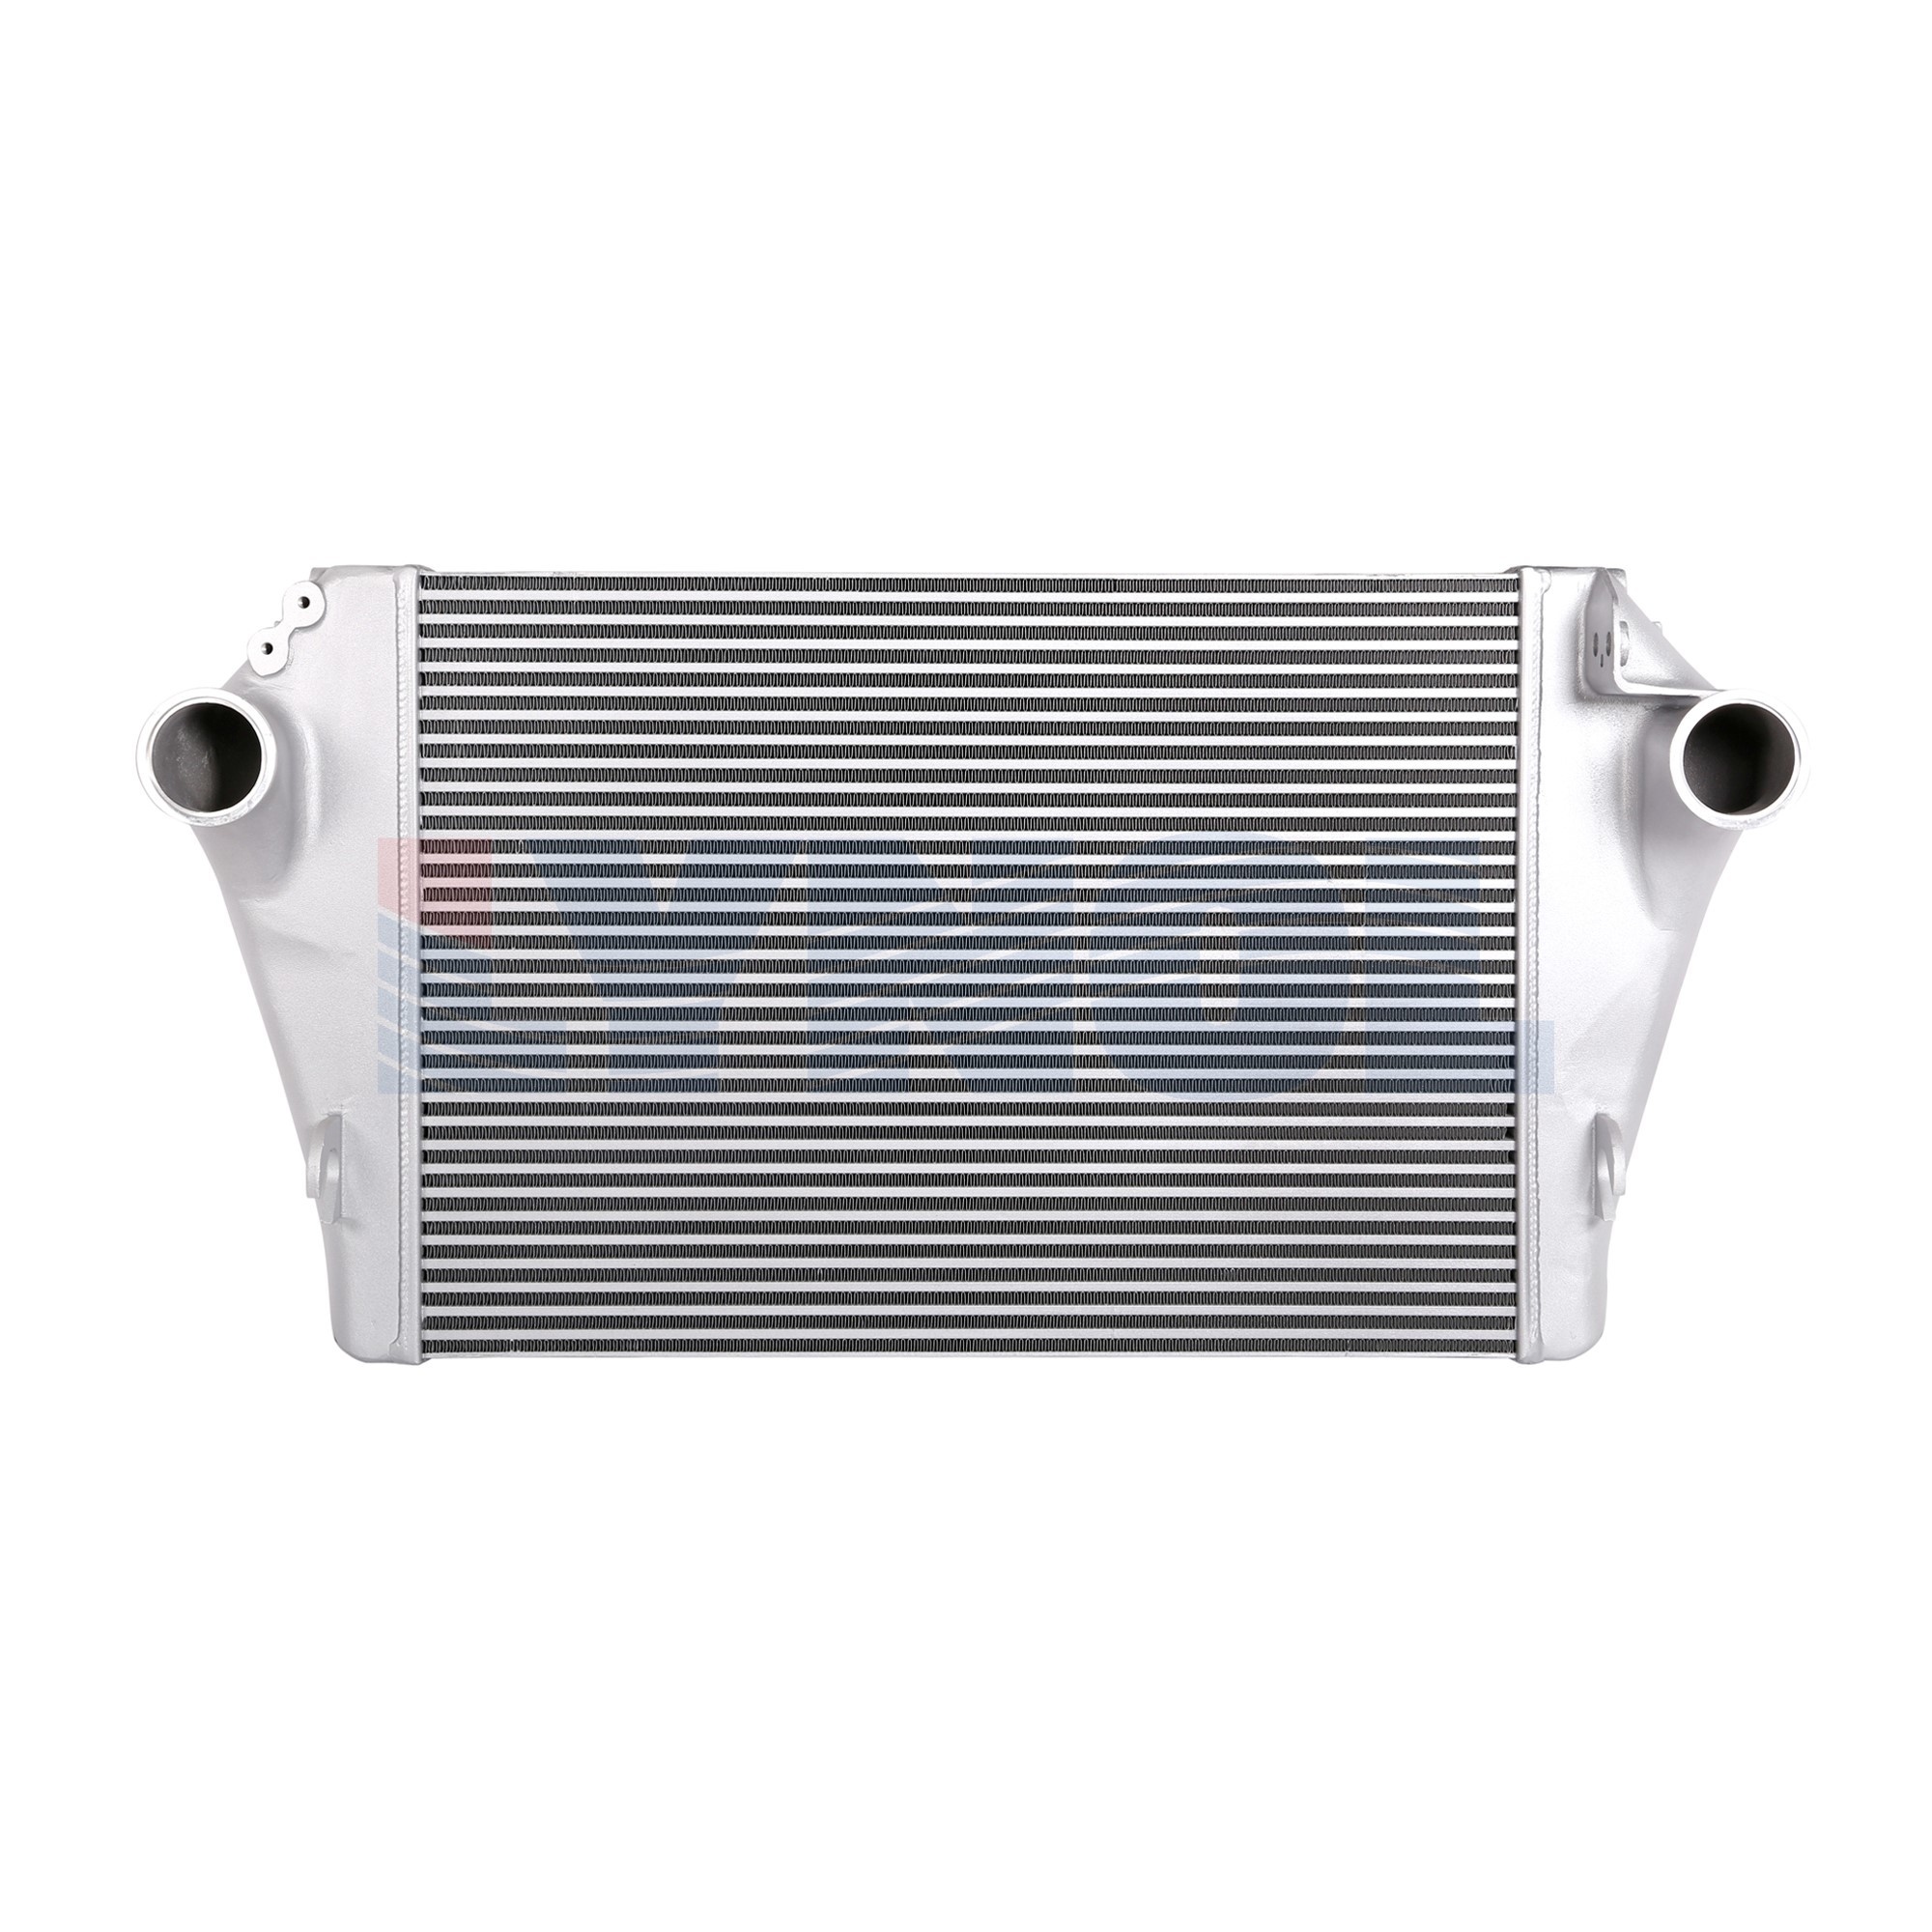 2413-006 - Mack Charge Air Cooler